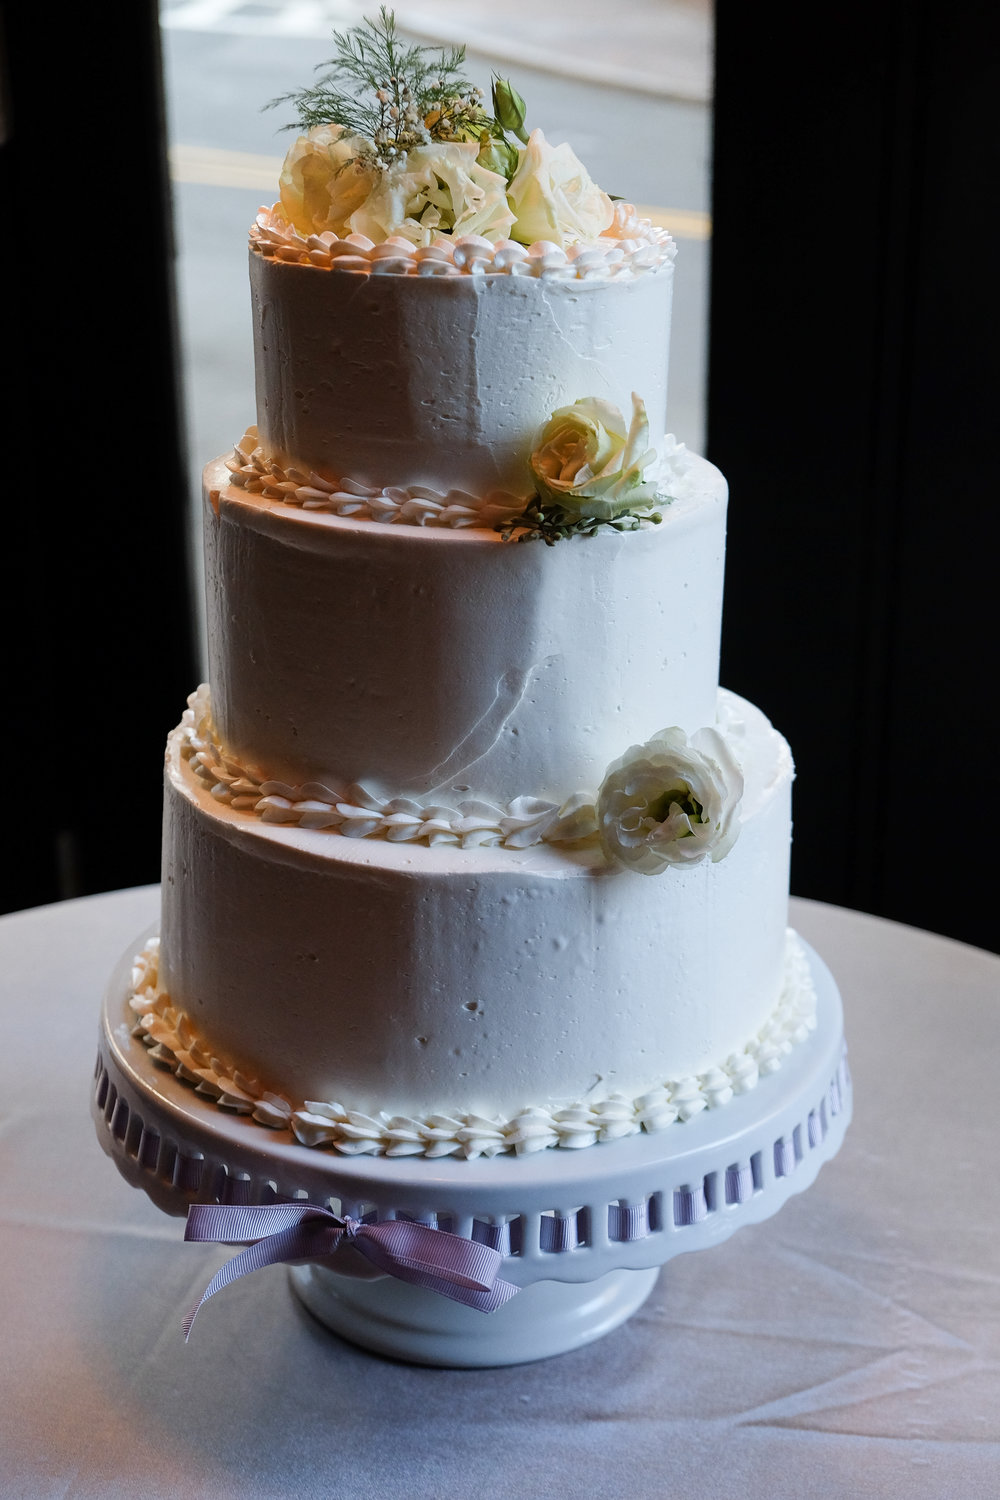 Classic wedding cake at our venue, 6B Lounge, located in Boston's Beacon Hill